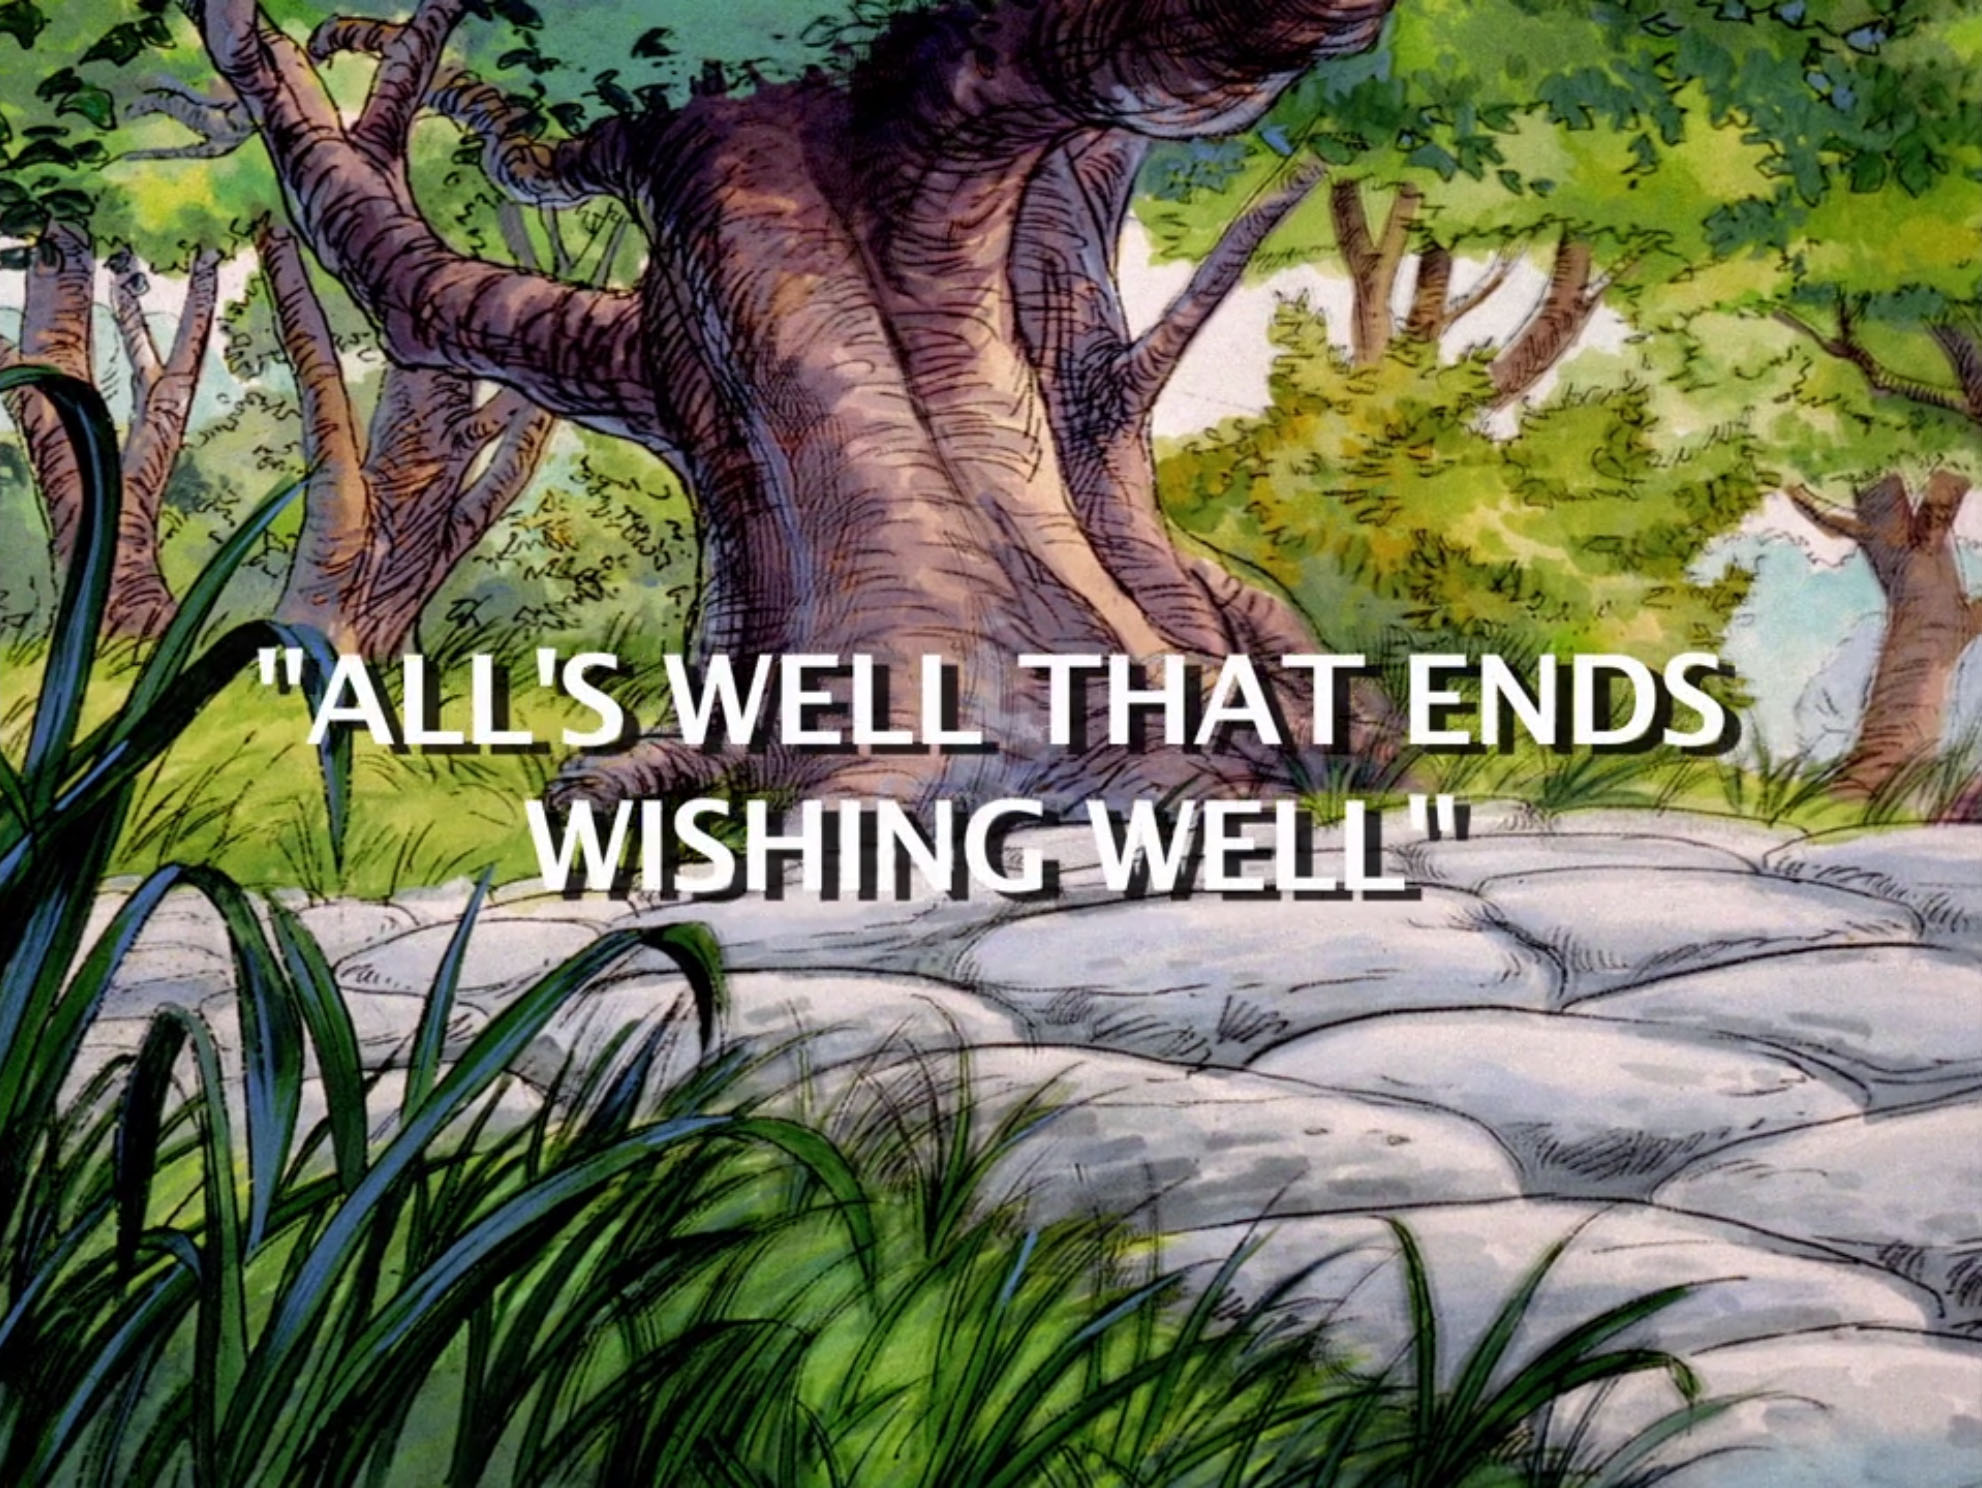 File:All's Well That Ends Wishing Well.jpg